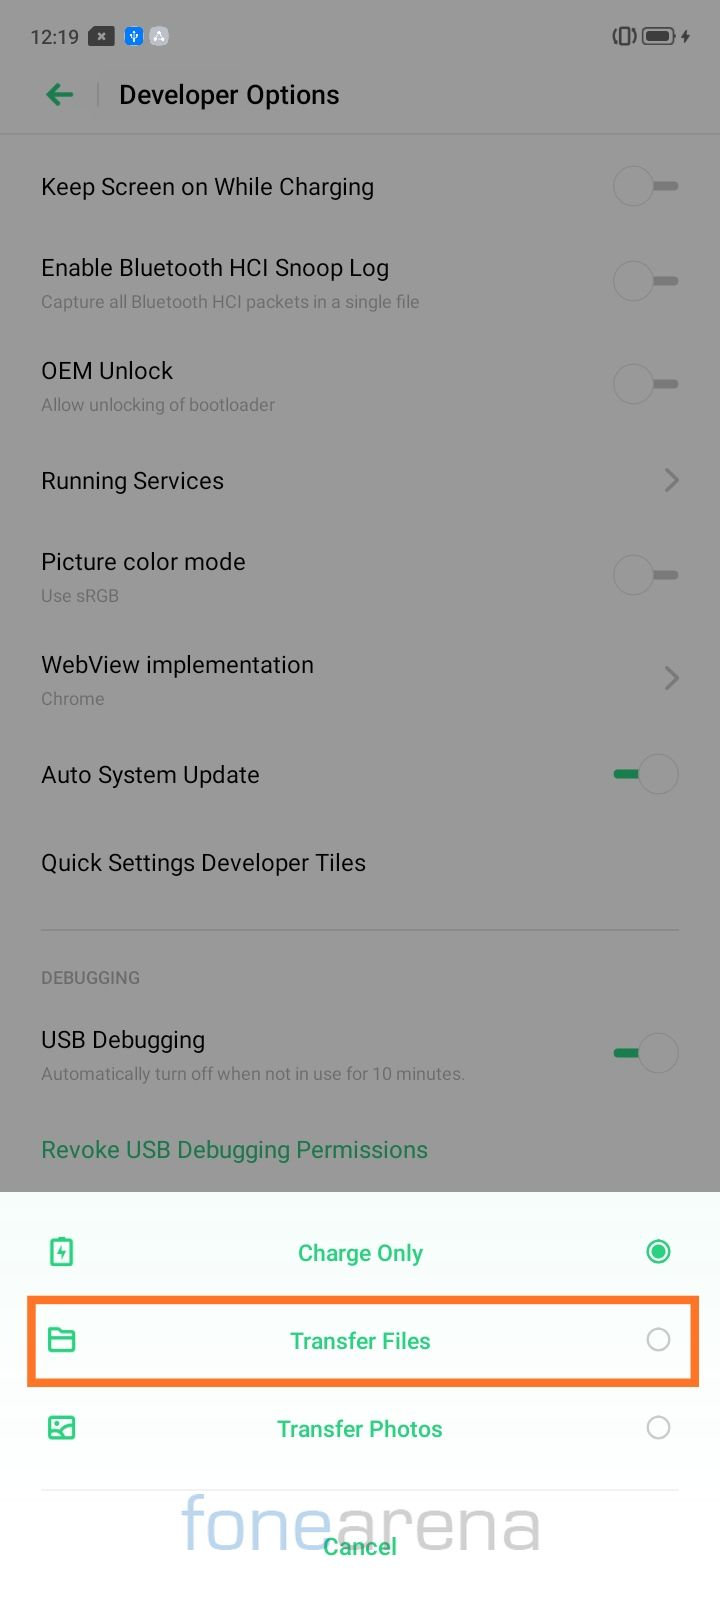 How to uninstall apps on realme devices without root